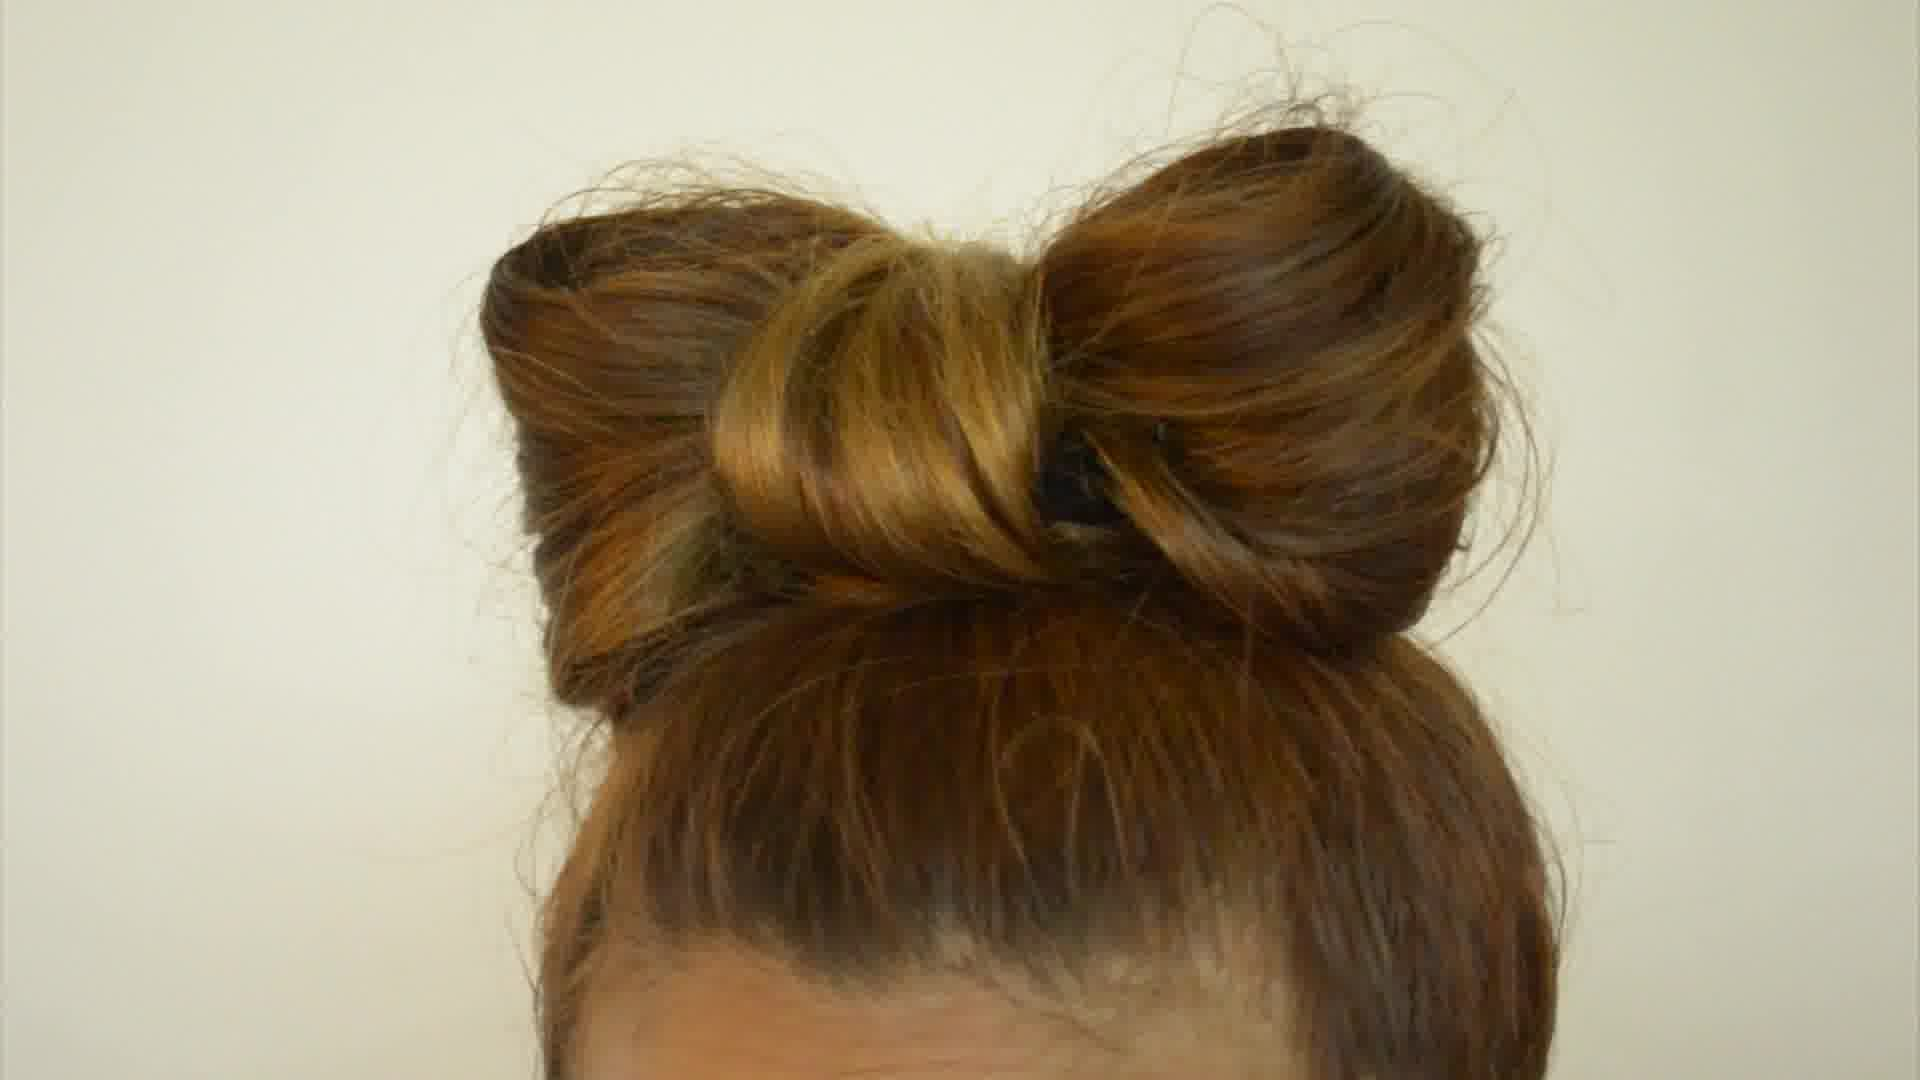 How To Make A Bow Out Of Your Hair Long Hair Kids Hairstyles Bow Hairstyle Tutorial Bow Hairstyle